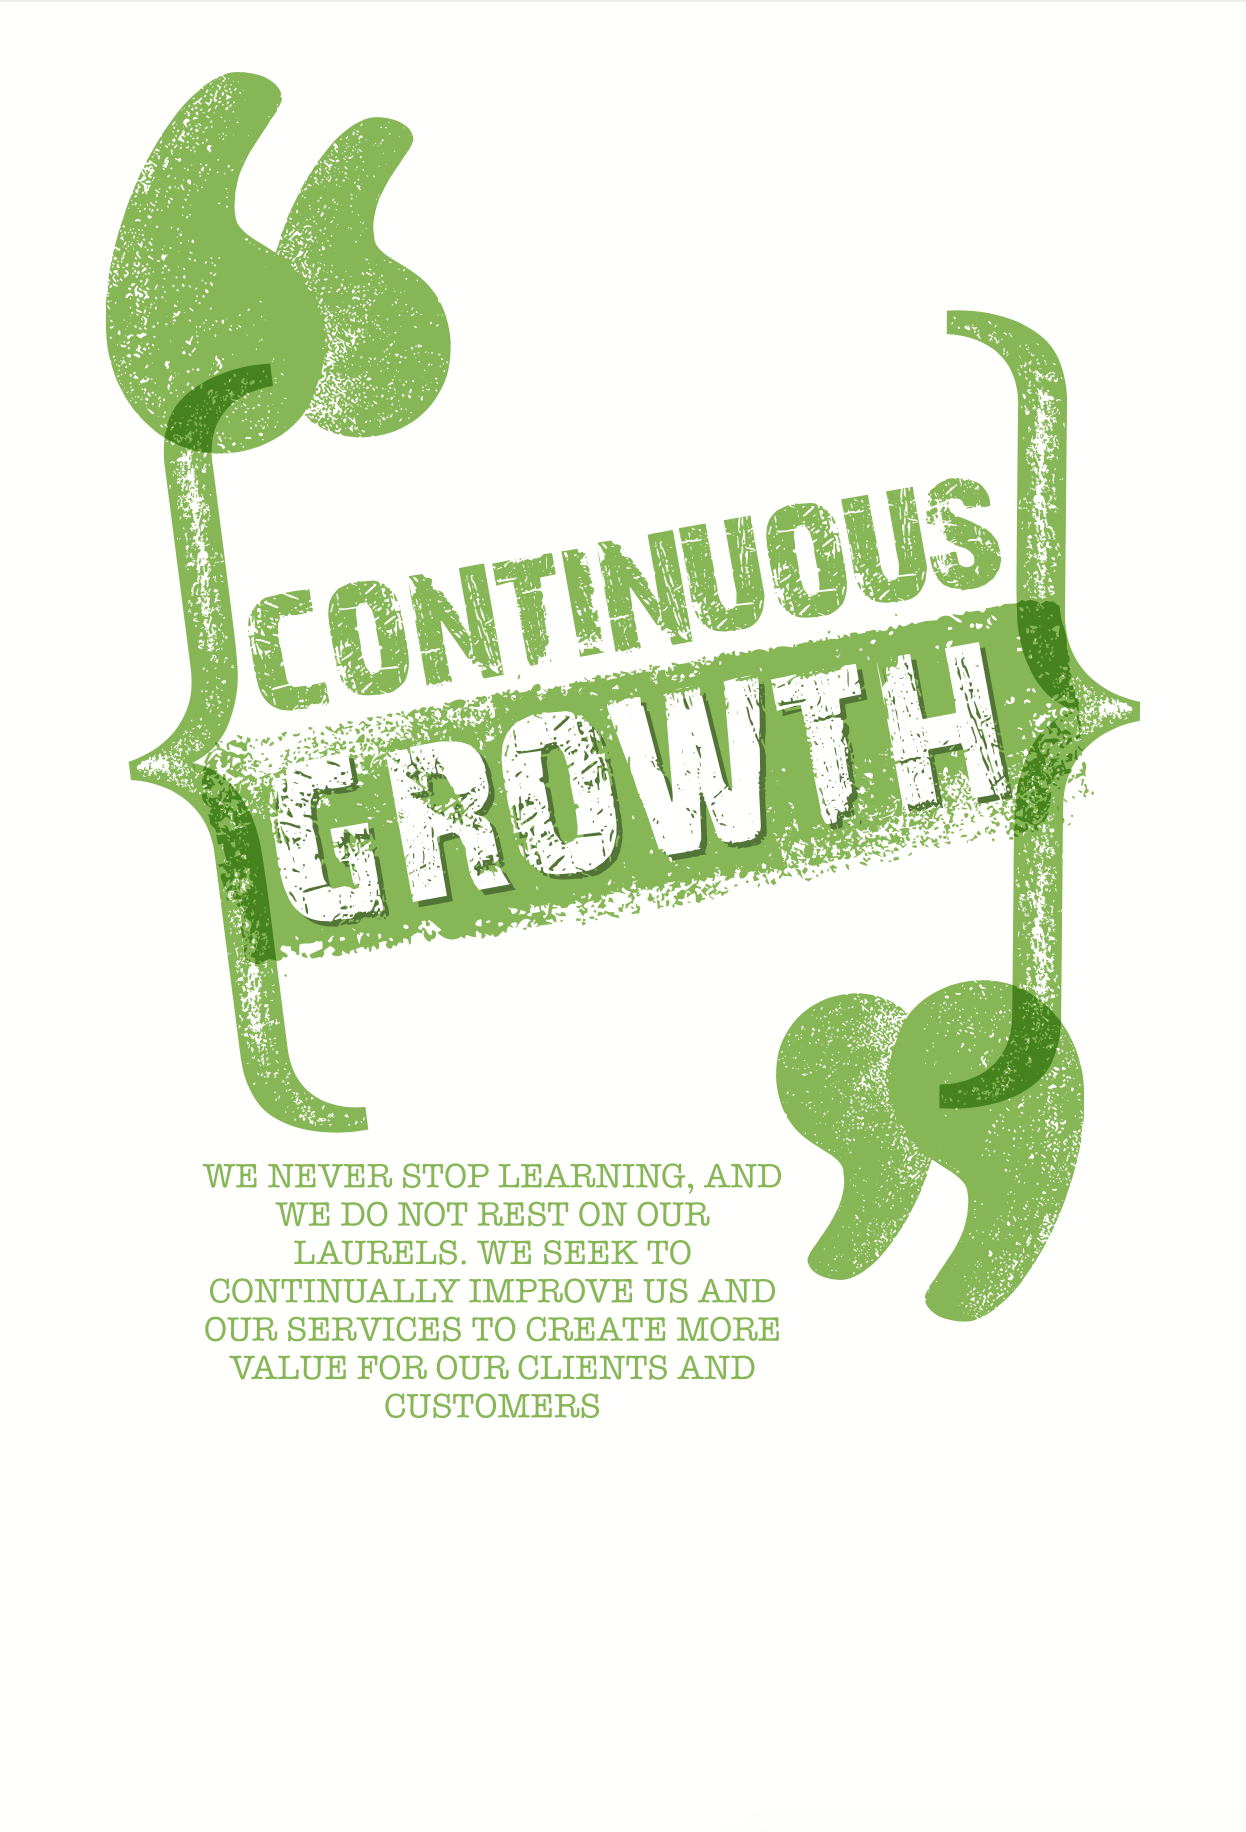 Harvest Wealth Group Core Values- Continuous Growth